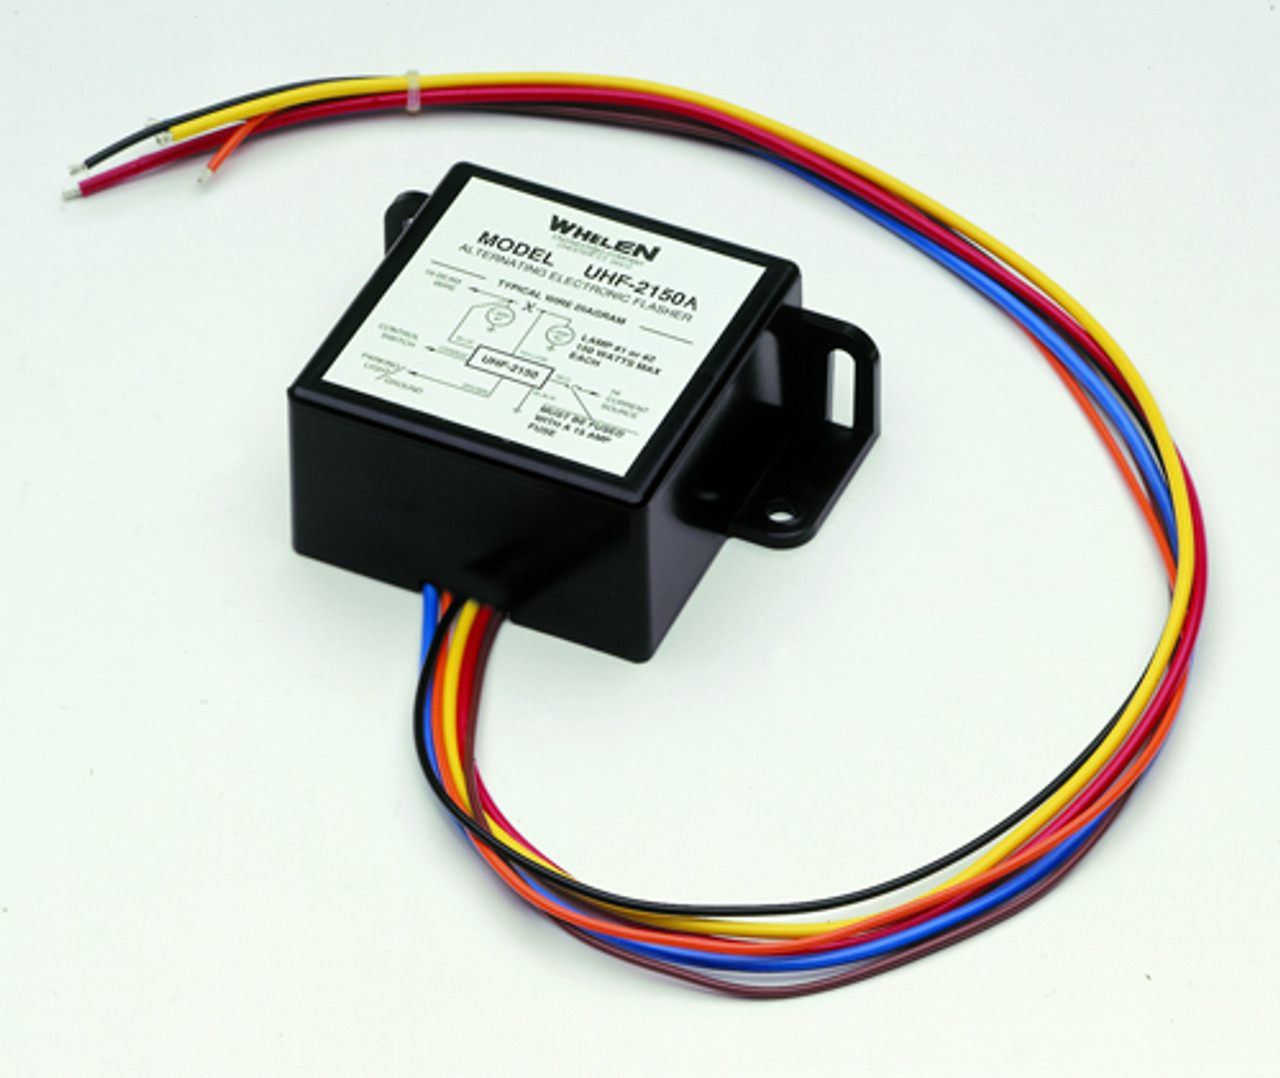 small resolution of universal headlight flasher by whelen uhf2150a